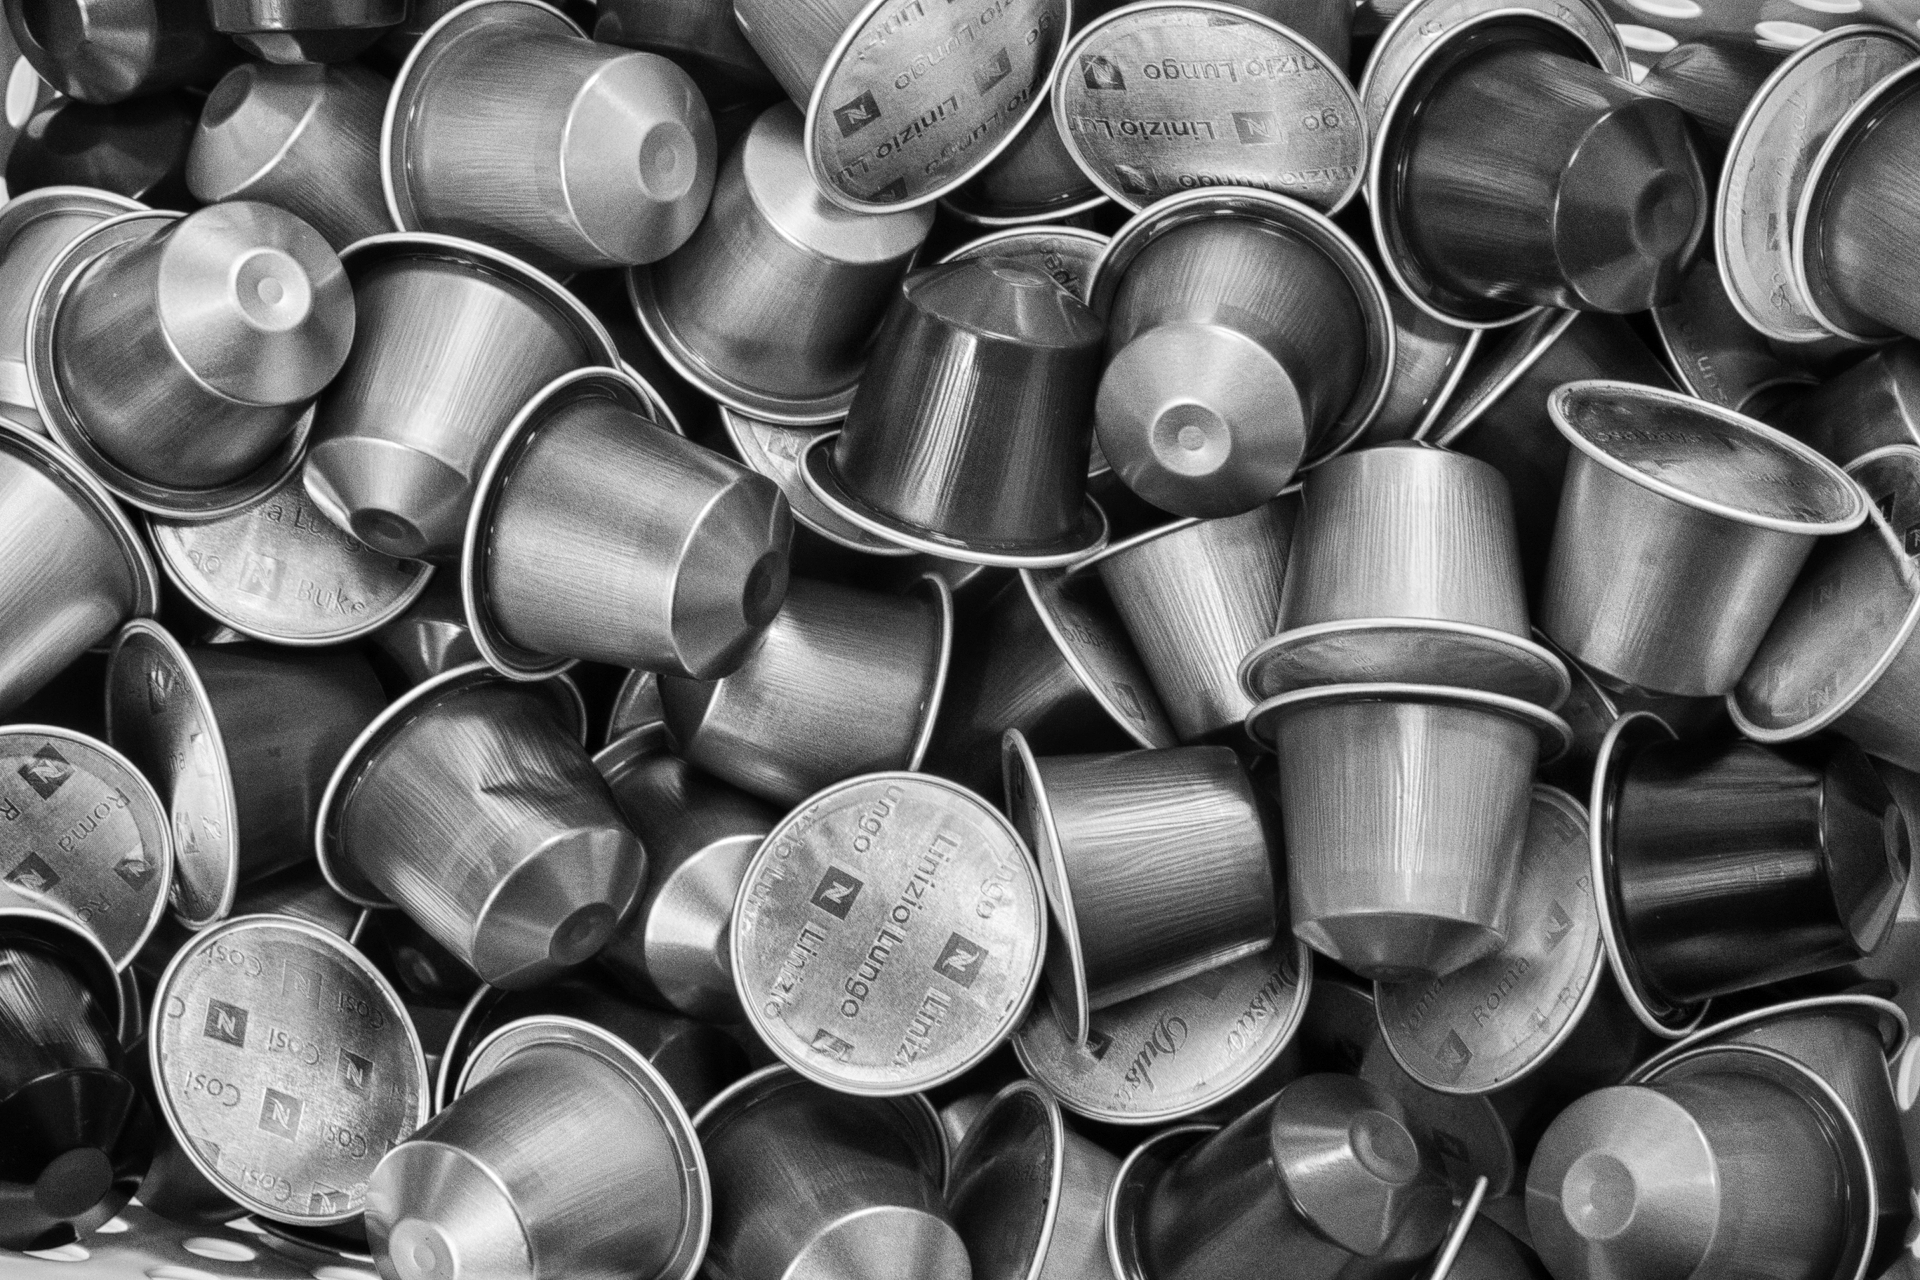 A pile of coffee capsules